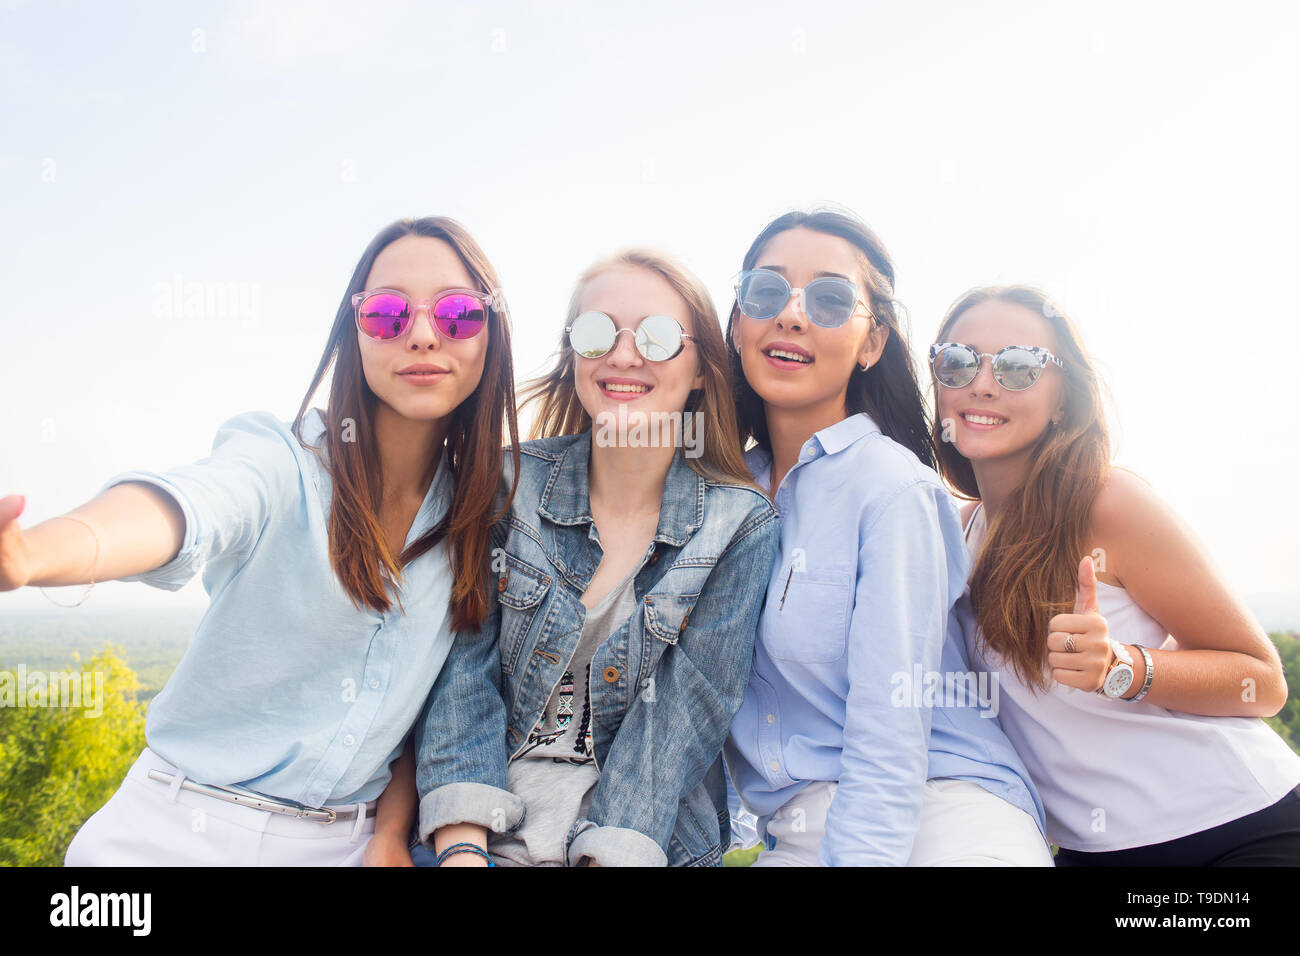 Best Friends Take Selfies While Walking In The Park Four Beautiful Women Wearing Sunglasses Are Having A Good Day Four Beautiful Young Student Girls Stock Photo Alamy